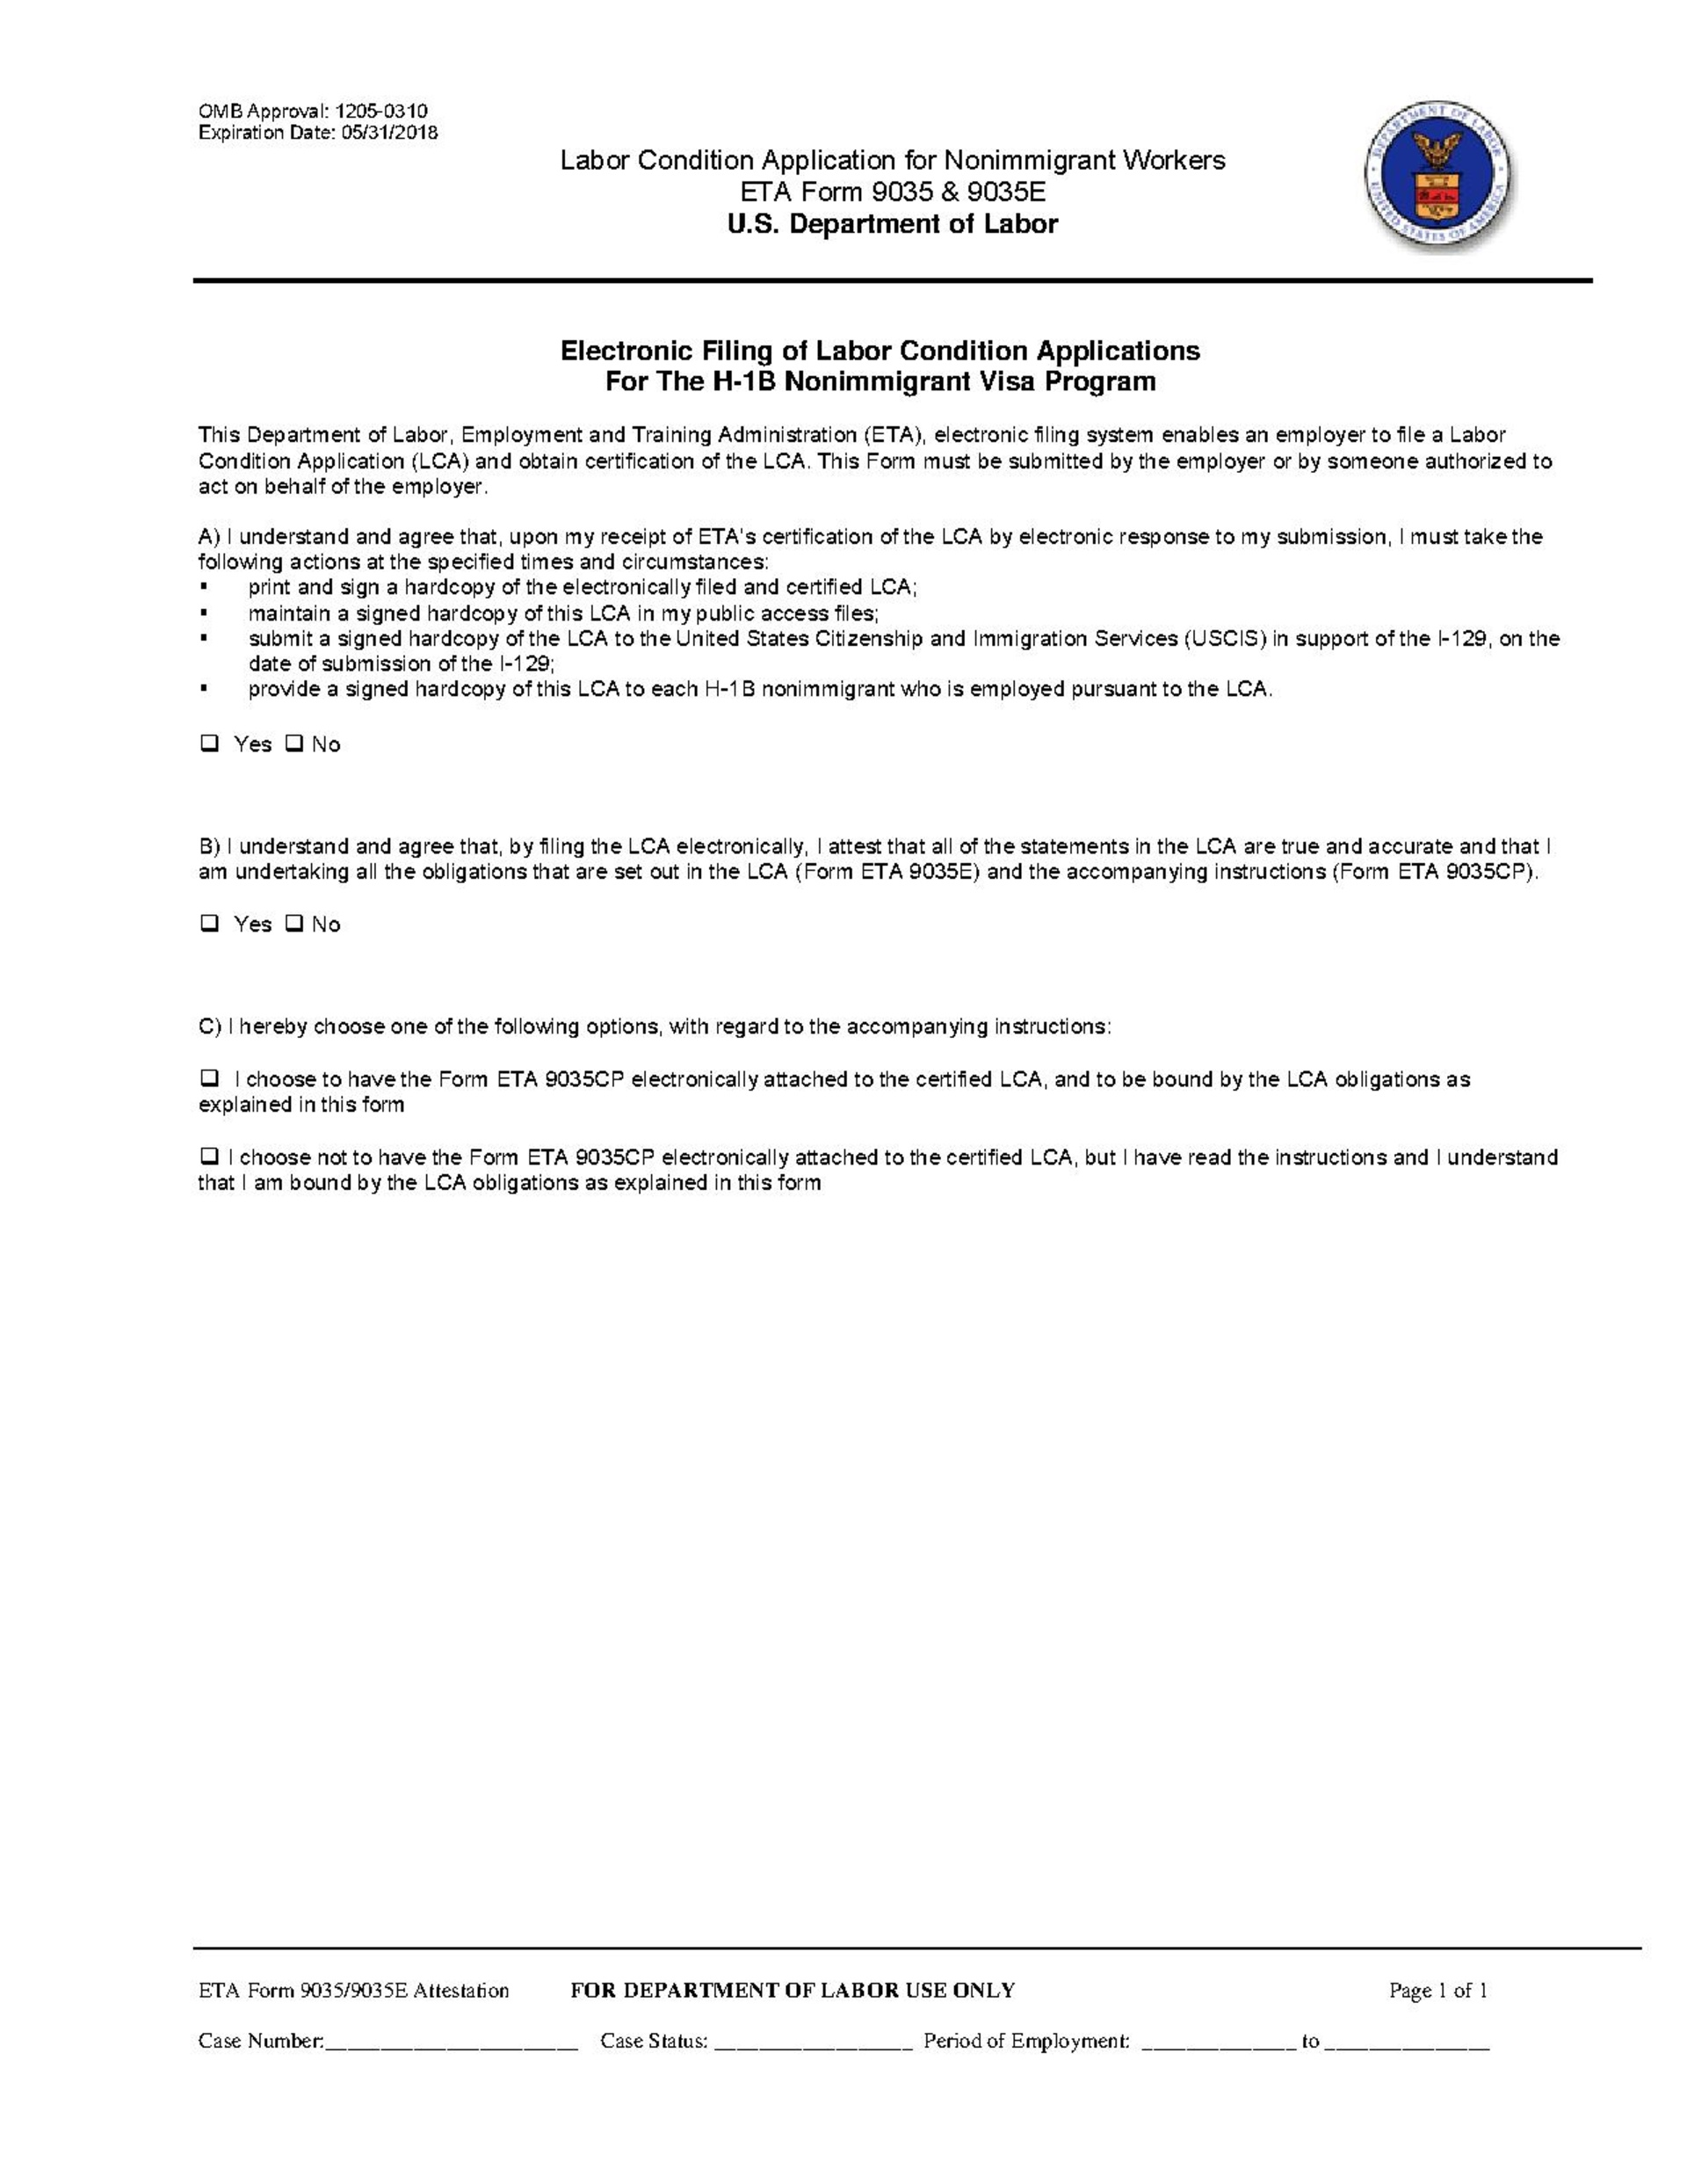 condition for the application of lexum